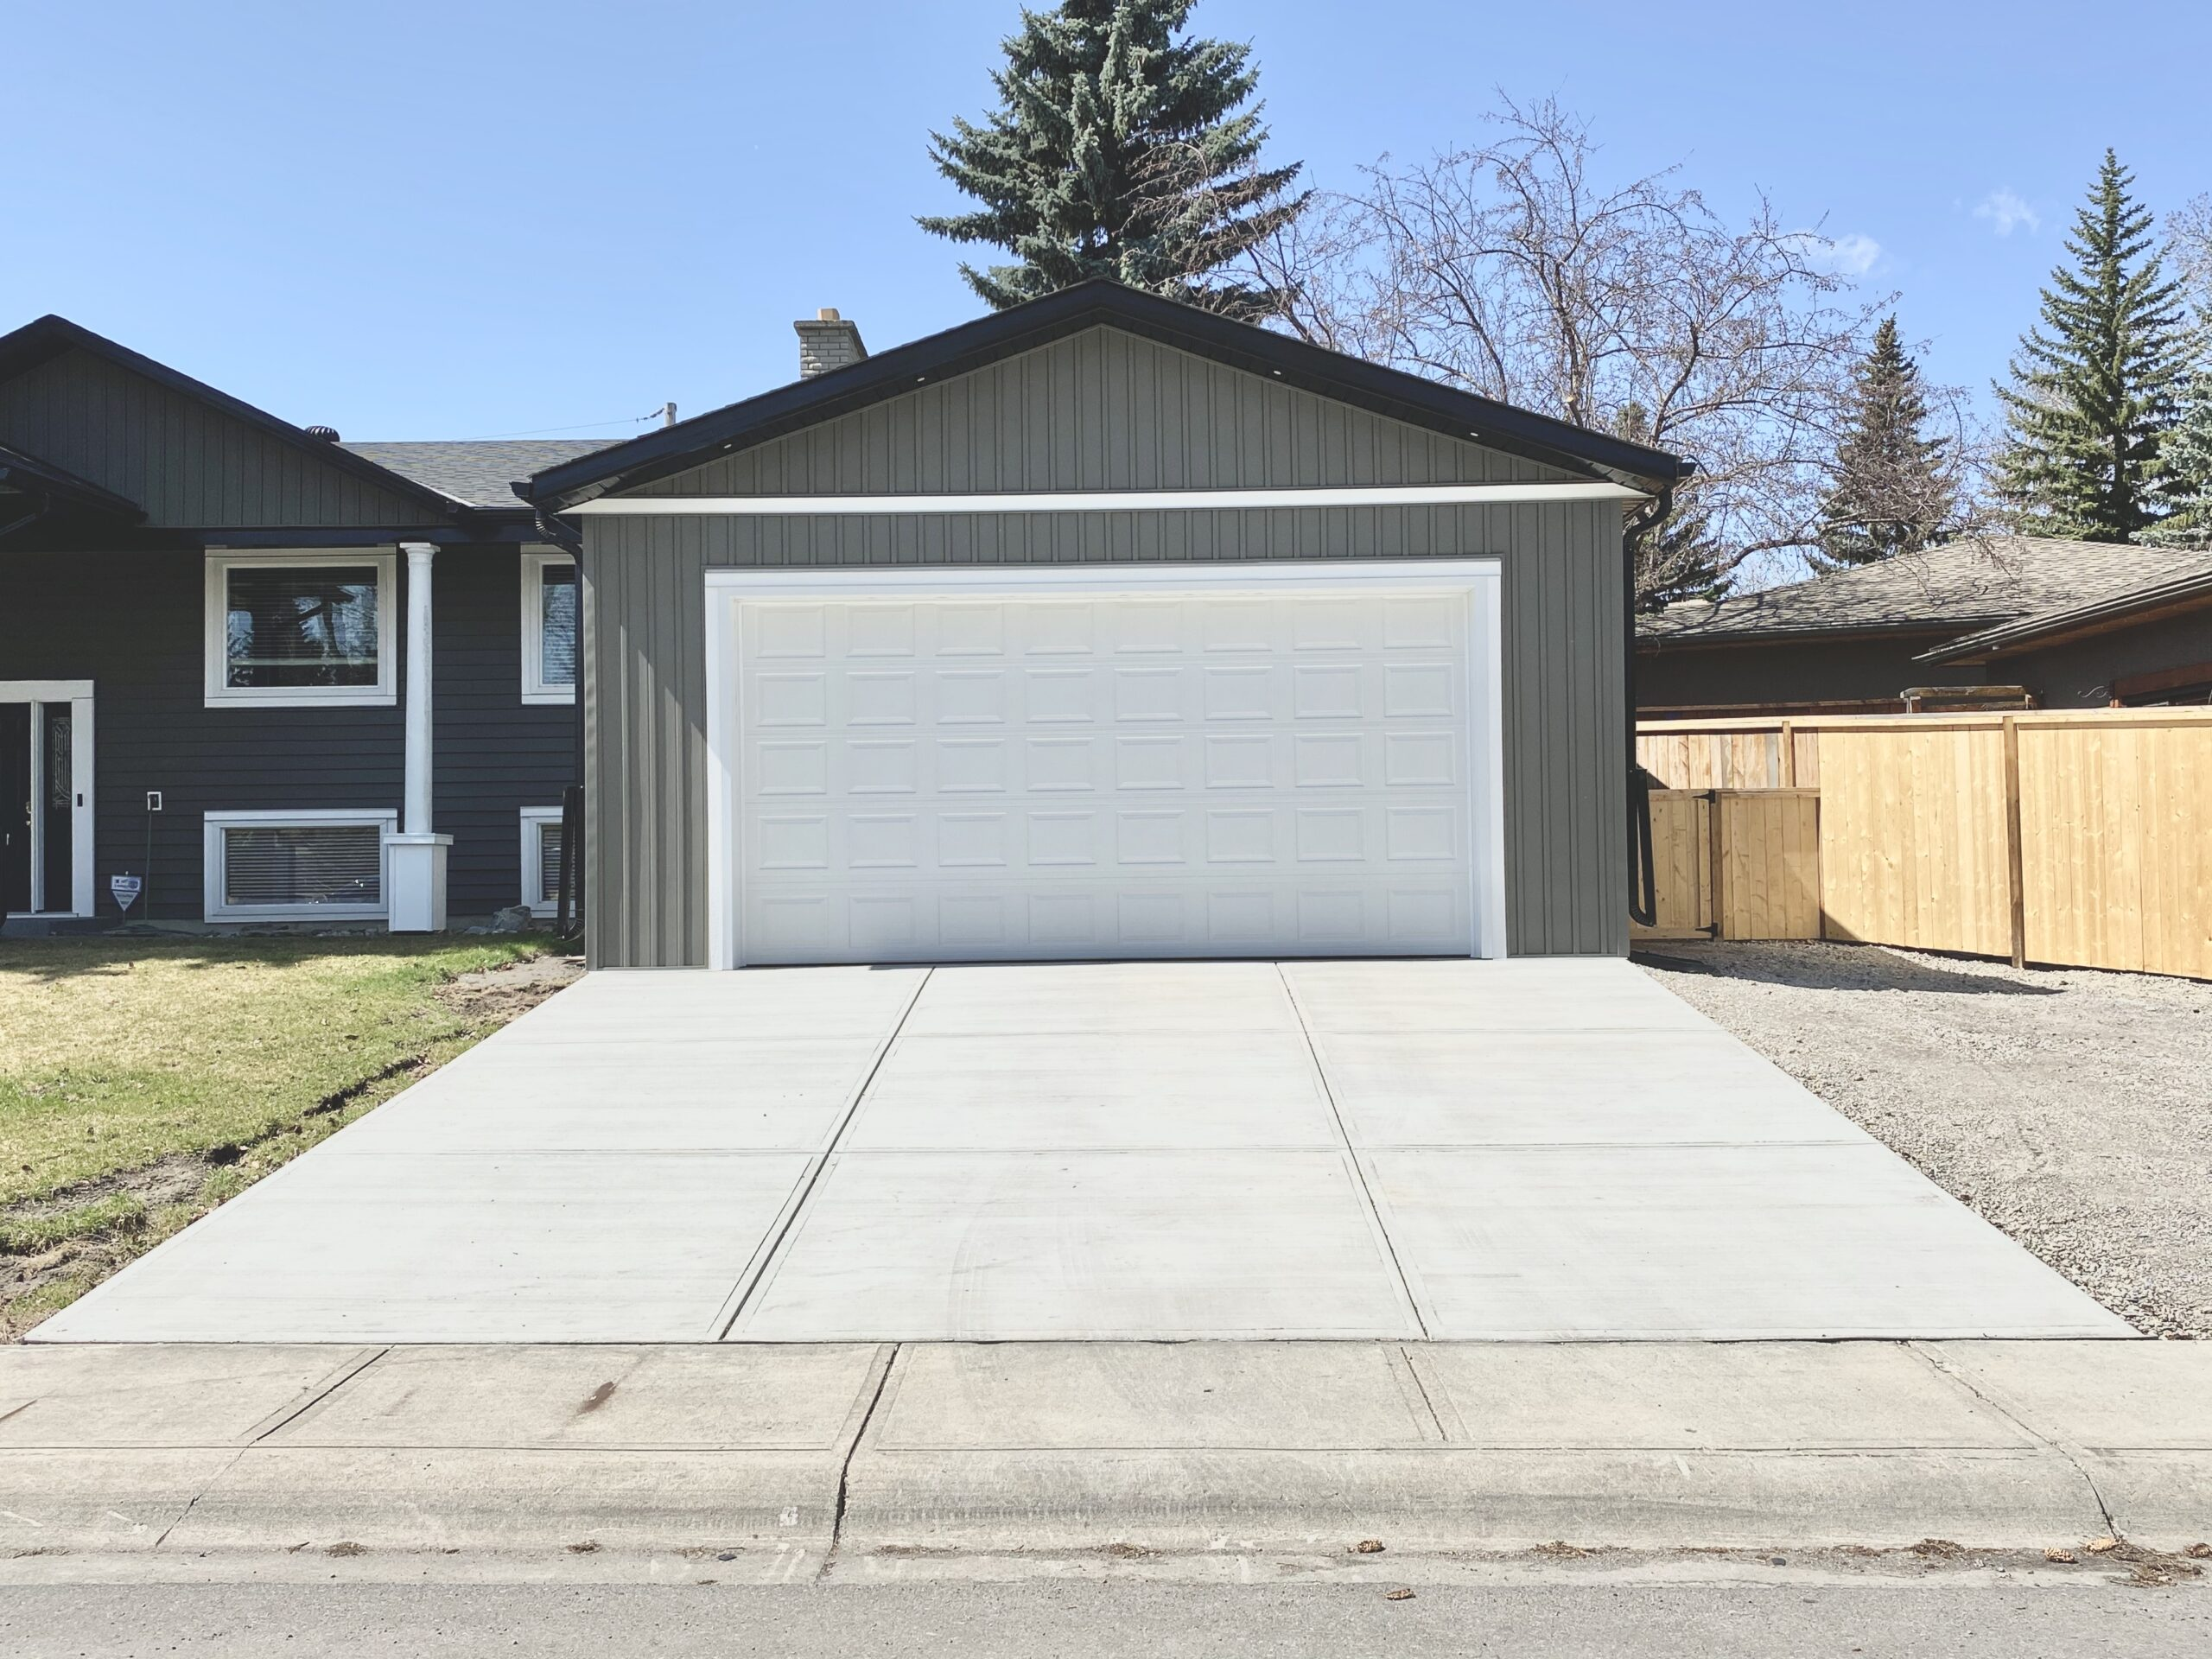 New Garage, Workshop Addition and Driveway in Willow Park, Calgary, Alberta